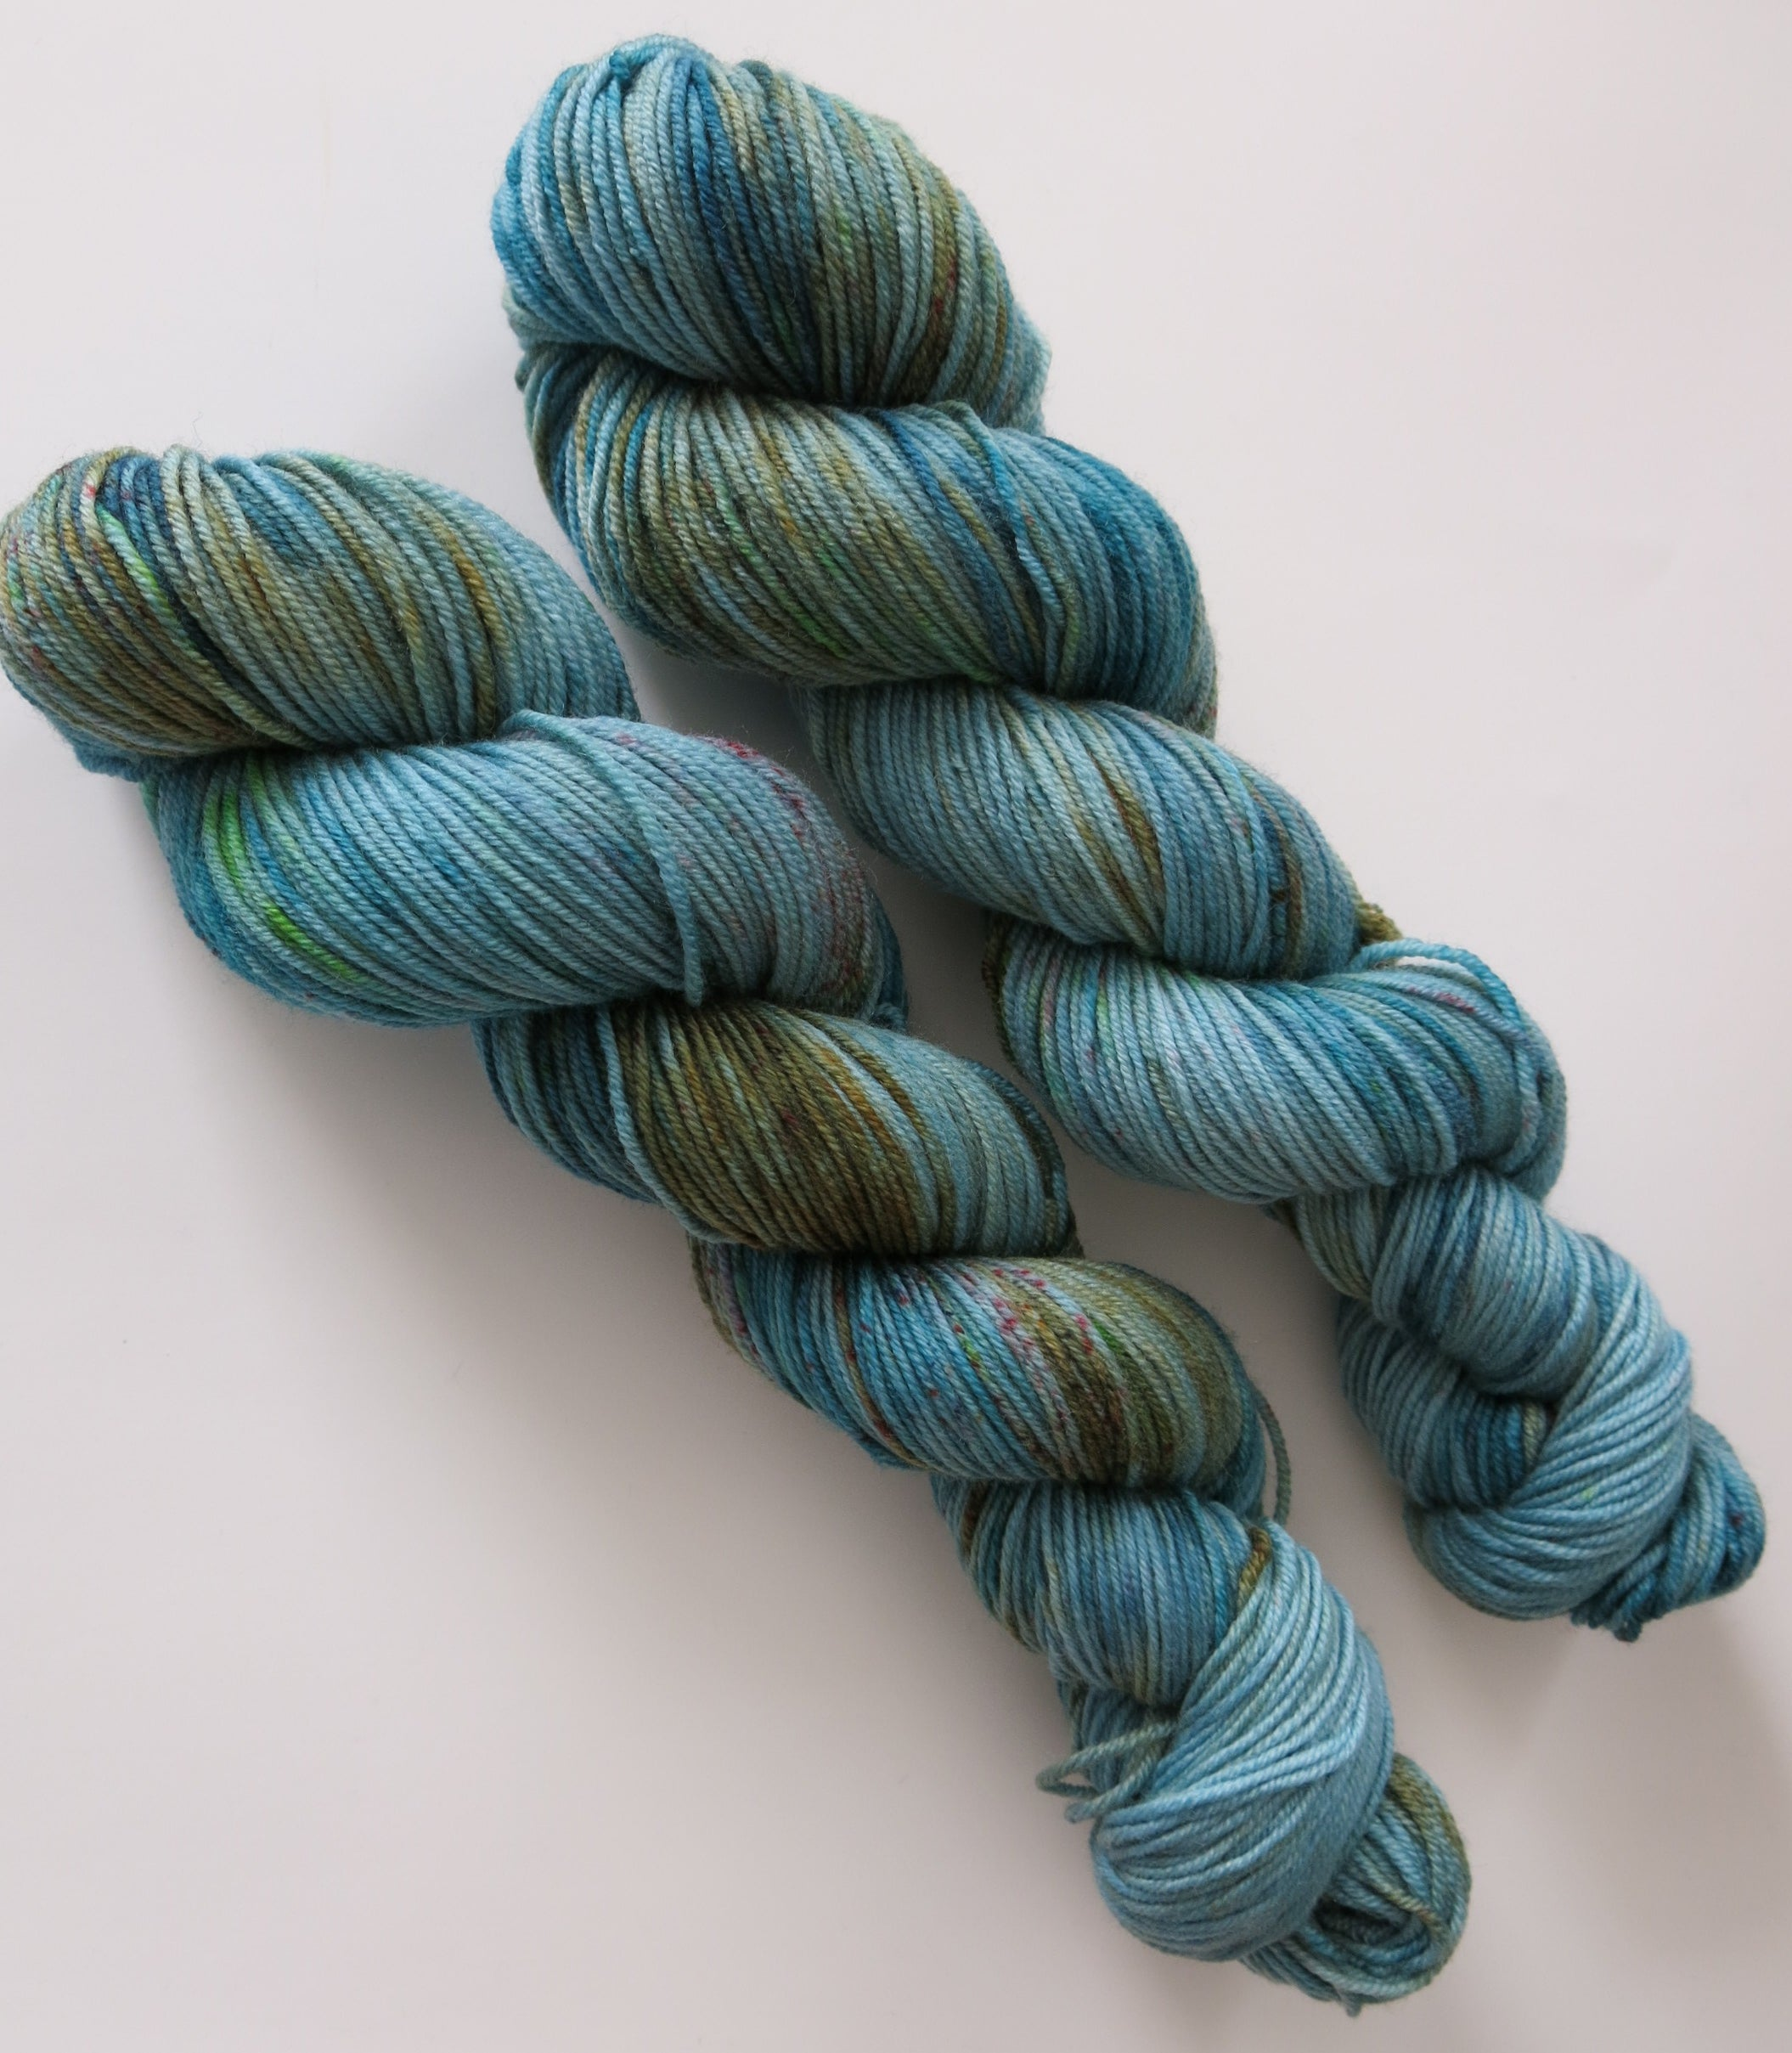 indie dyed double knit yarn skeins by my mama knits